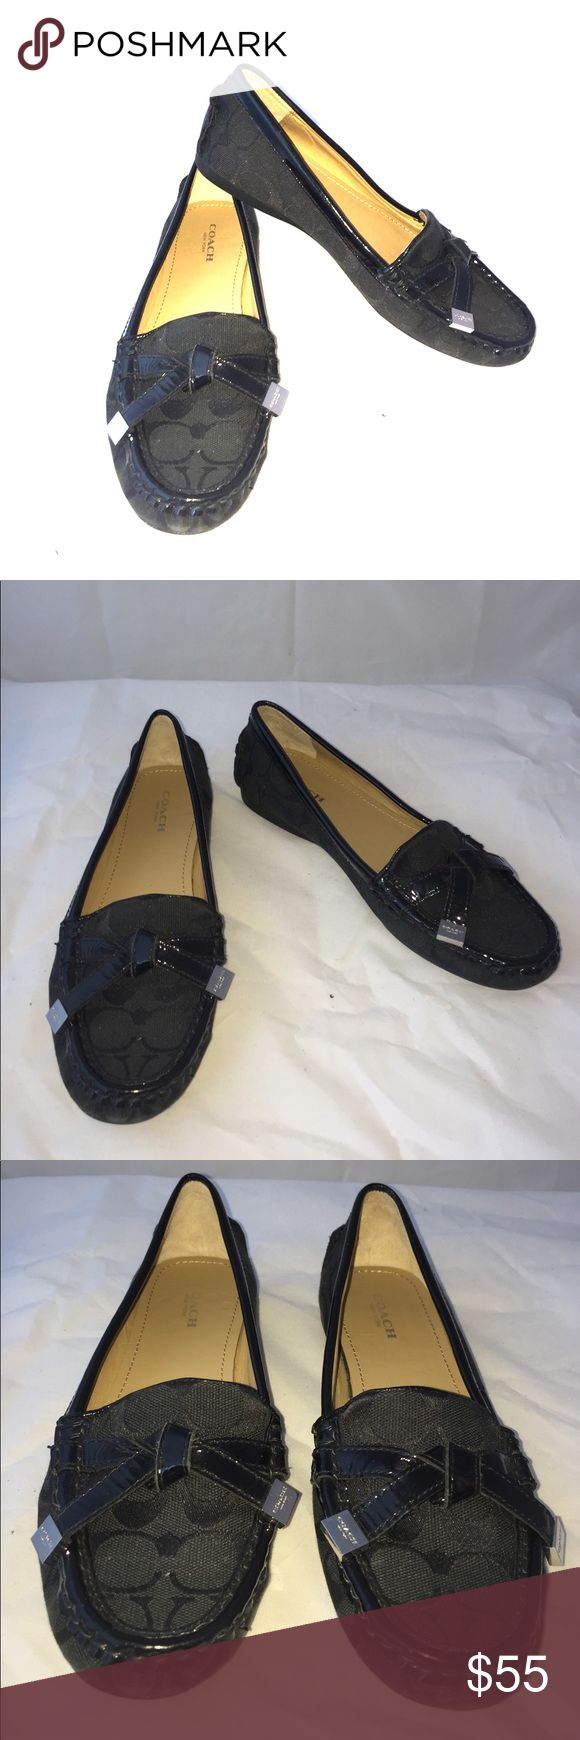 "Black ""FRIDA"" COACH Loafers Size 7B These are in practically new condition. Black Cloth with a patent leather trim.  Size 7 B. Very very comfortable. Make me an offer or bundle up. Coach Shoes Flats & Loafers"